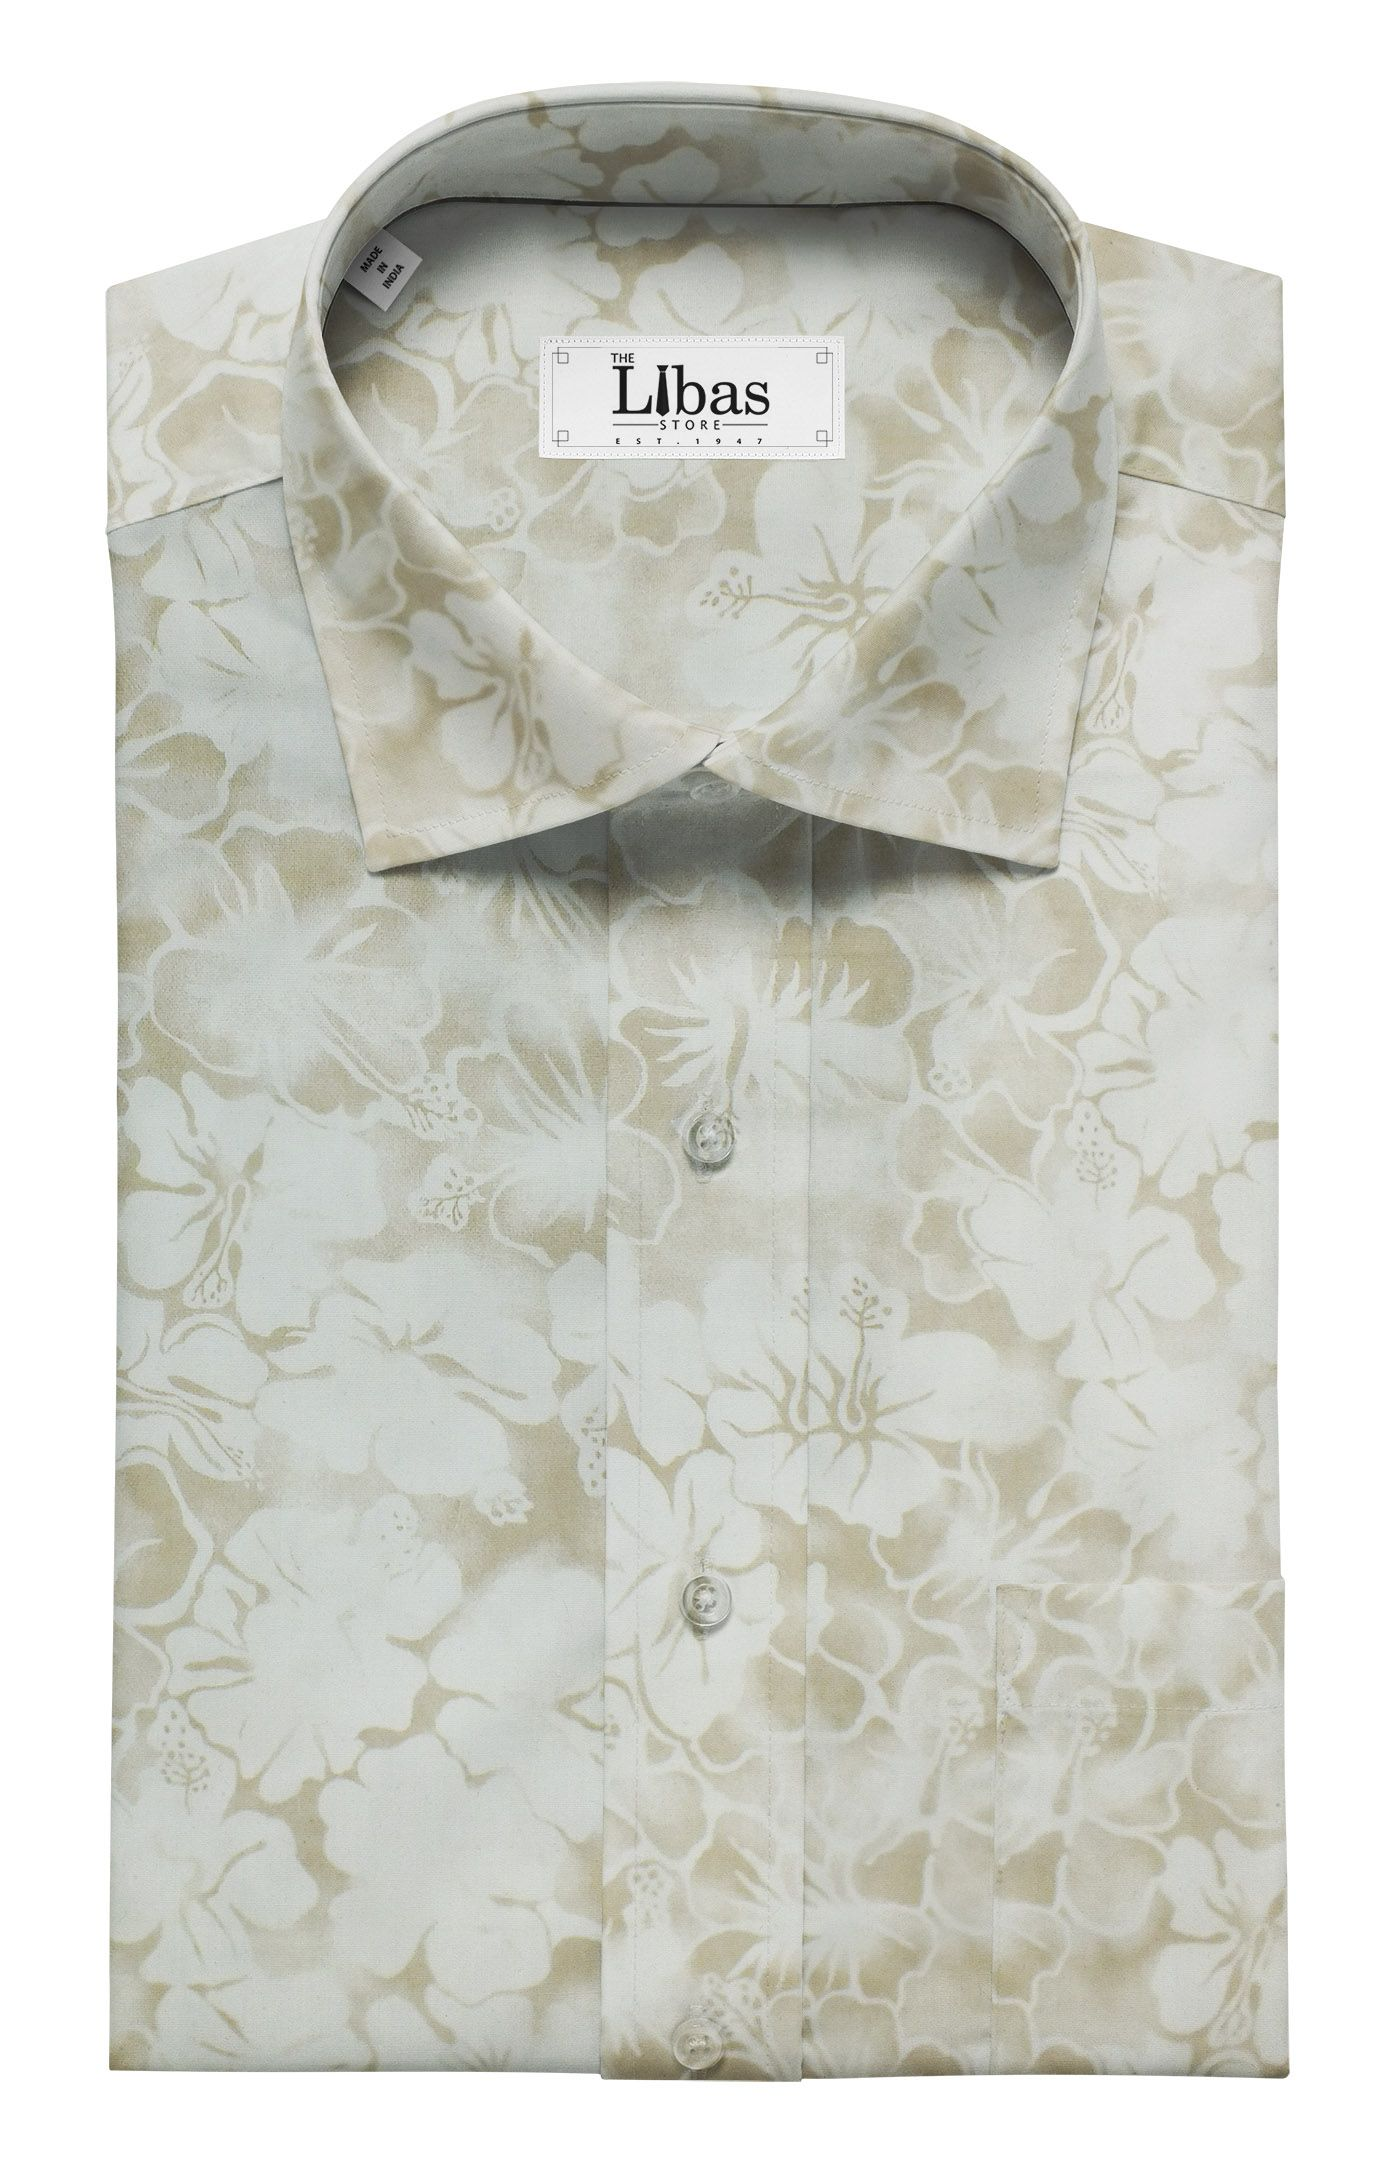 7a47bb739fe Combo of Raymond Beige Self Checks Trouser Fabric With Monza Off-White 100%  Cotton Beige Printed Shirt Fabric (Unstitched)